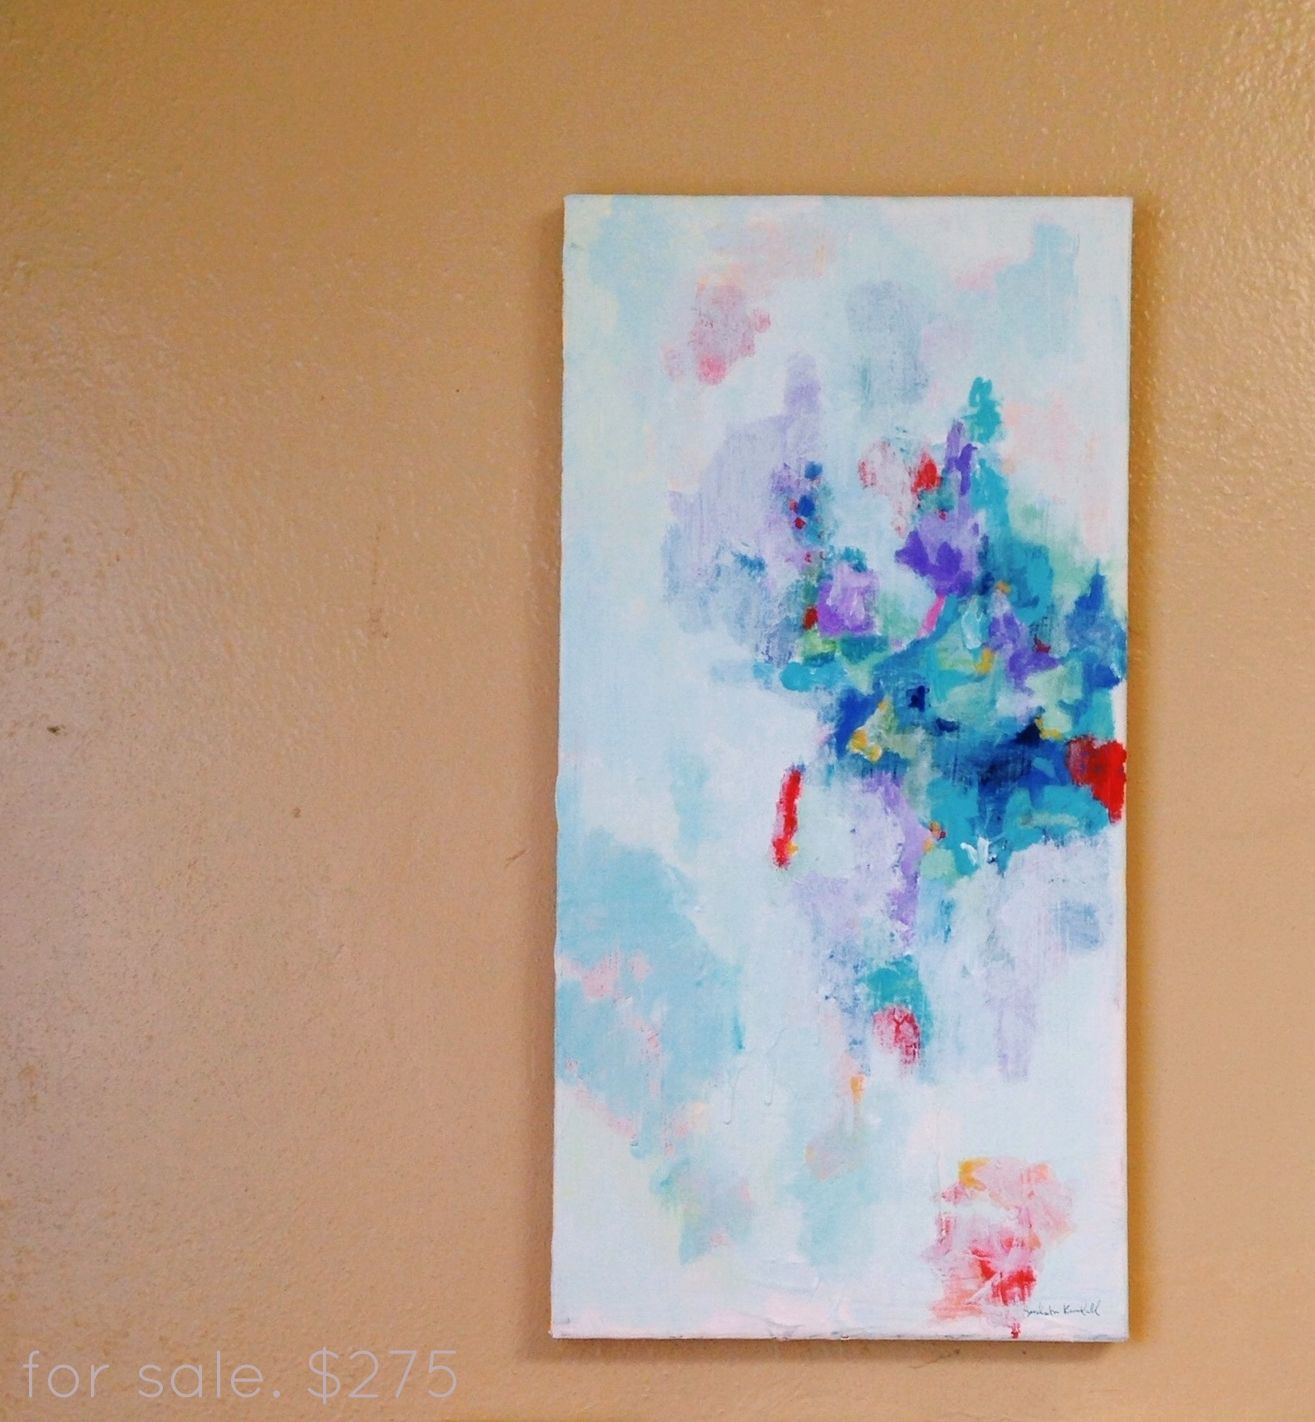 abstract blue colorful art  acrylic painting by Sarabeth Kendall more info: sarabethkendall.com